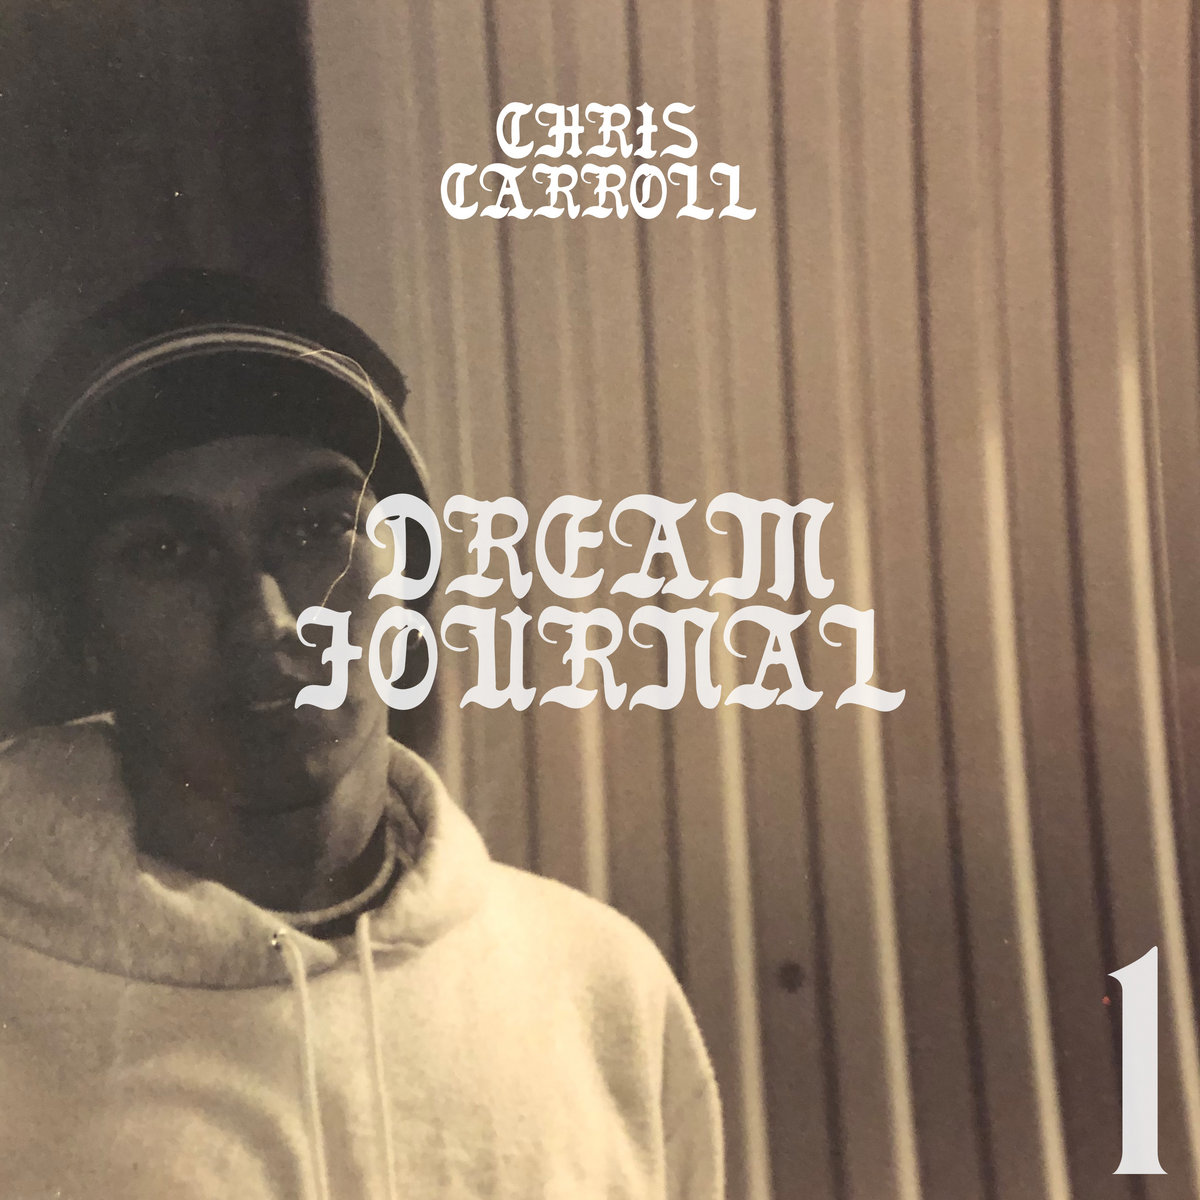 Chris Carroll-'Dream Journal, Vol. 1'. 2019. Self-Released by Chris Carroll for Raindrop Sound.